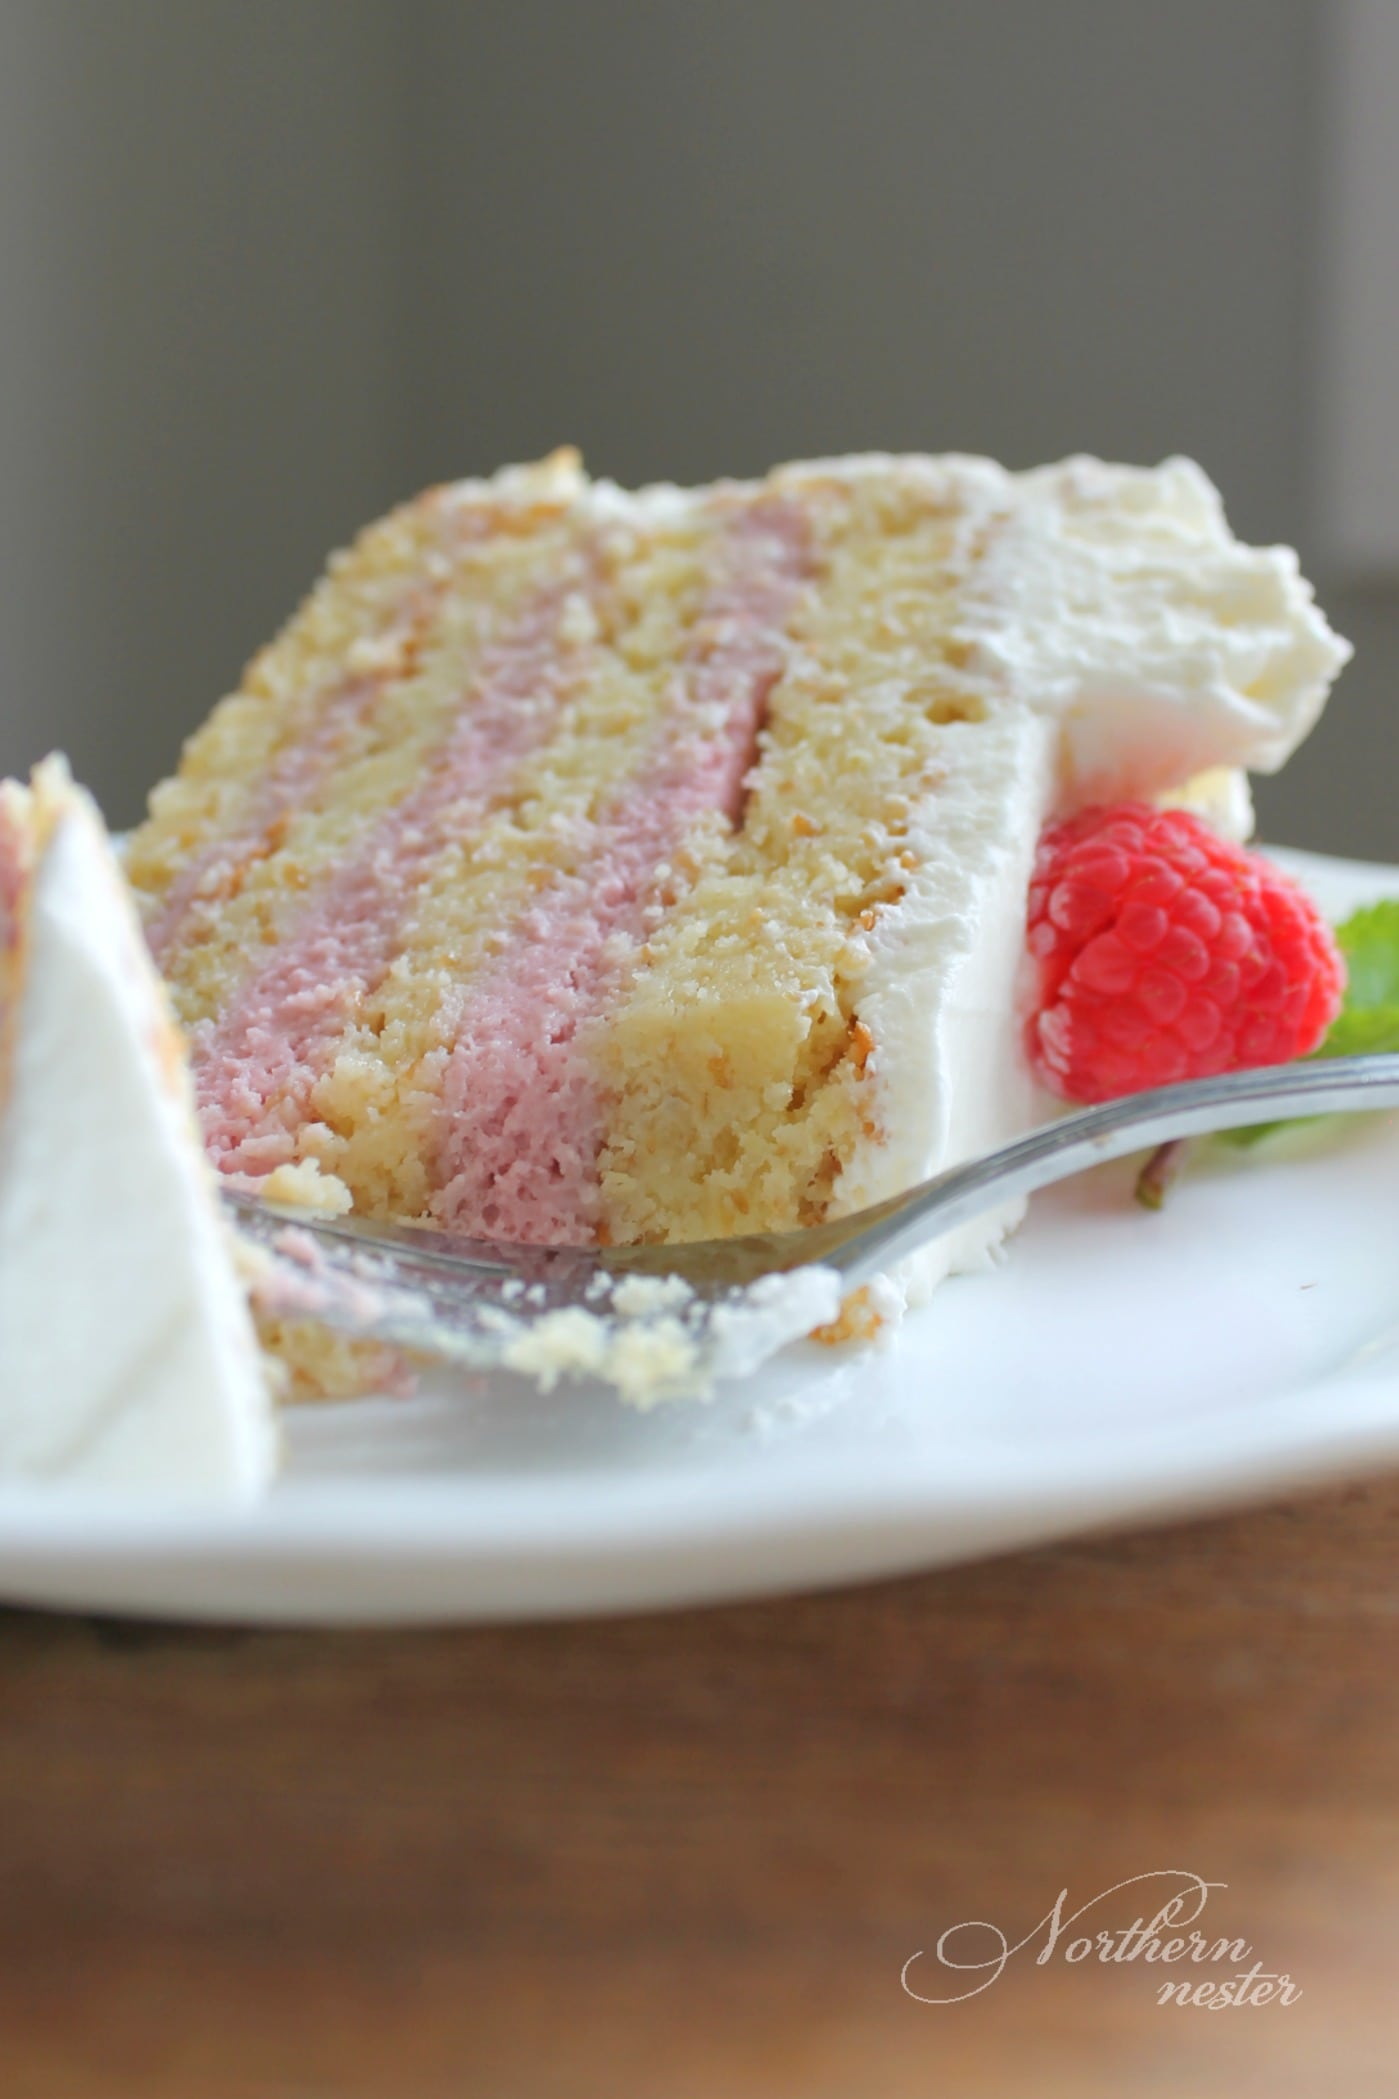 Charming Mousse Recipes Mselves Are About As Easy As Lemon Raspberry Mousse Cake S Norrn Nester But Cake This Lemon Raspberry Mousse Cake Is A Little More Involved Because nice food Raspberry Cake Filling